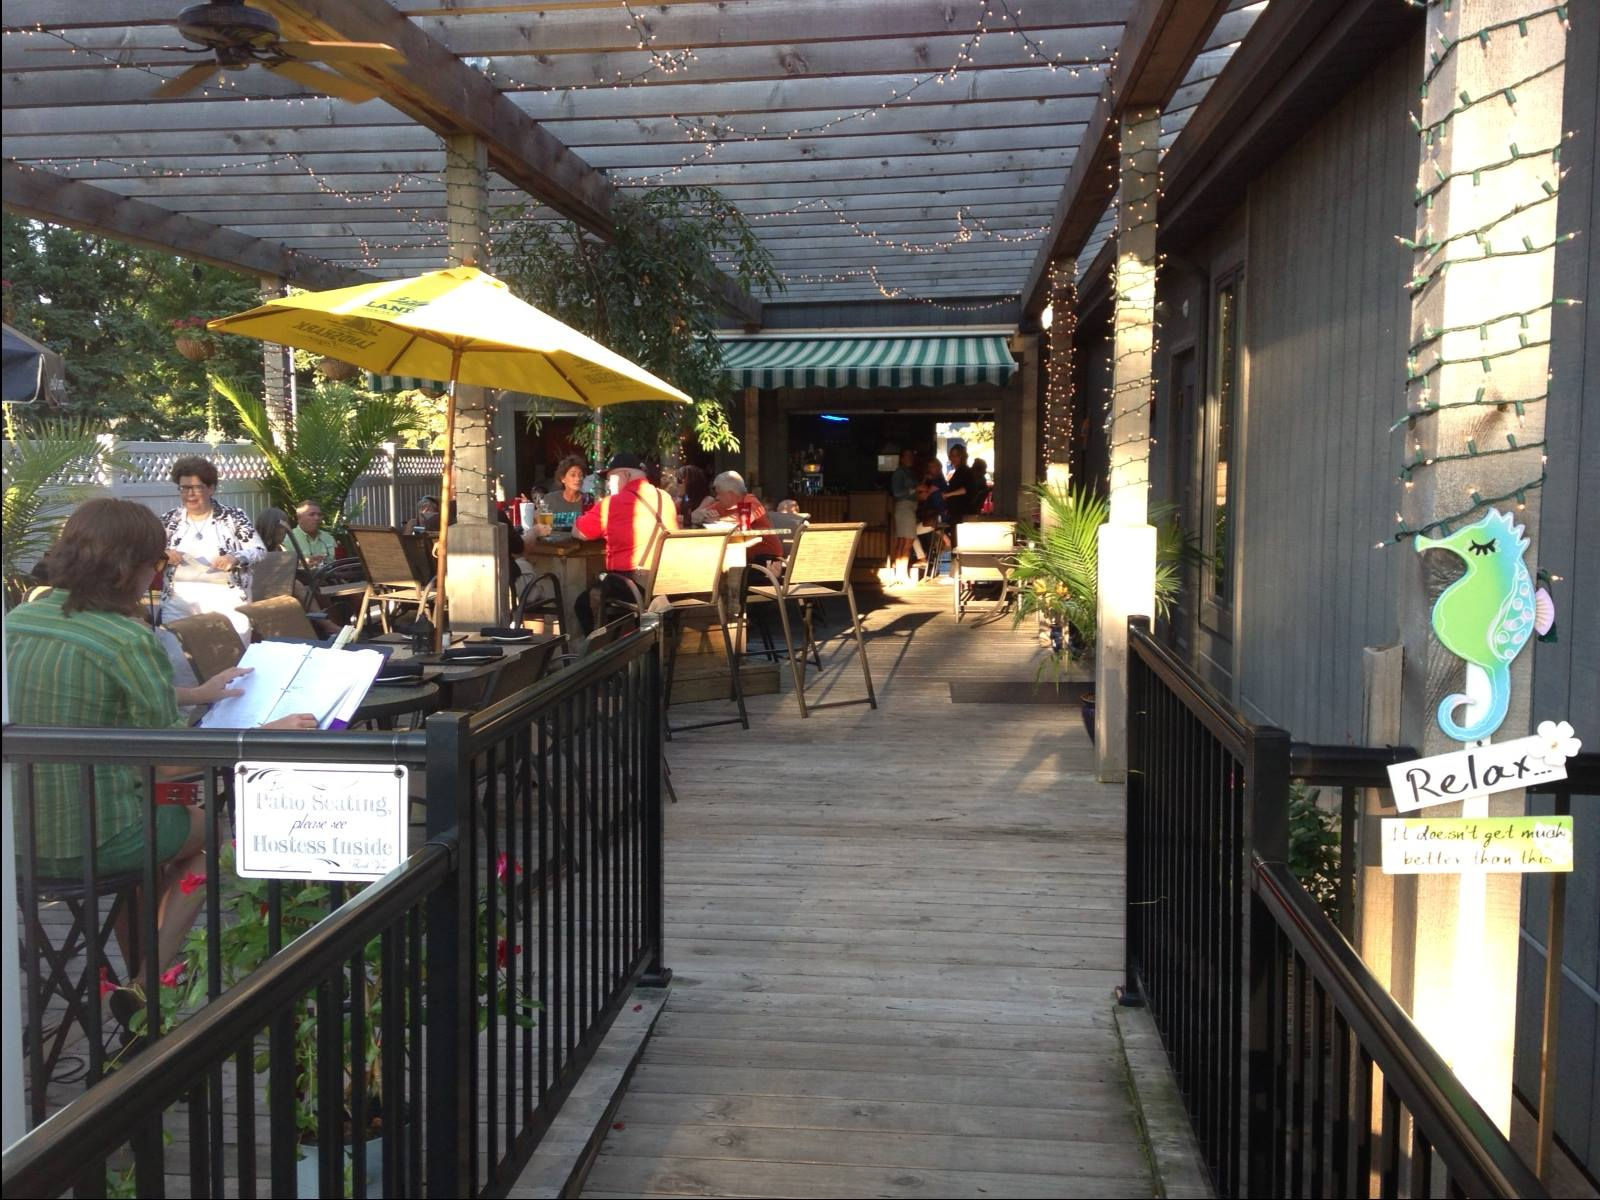 An image of people eating at the outdoor patio